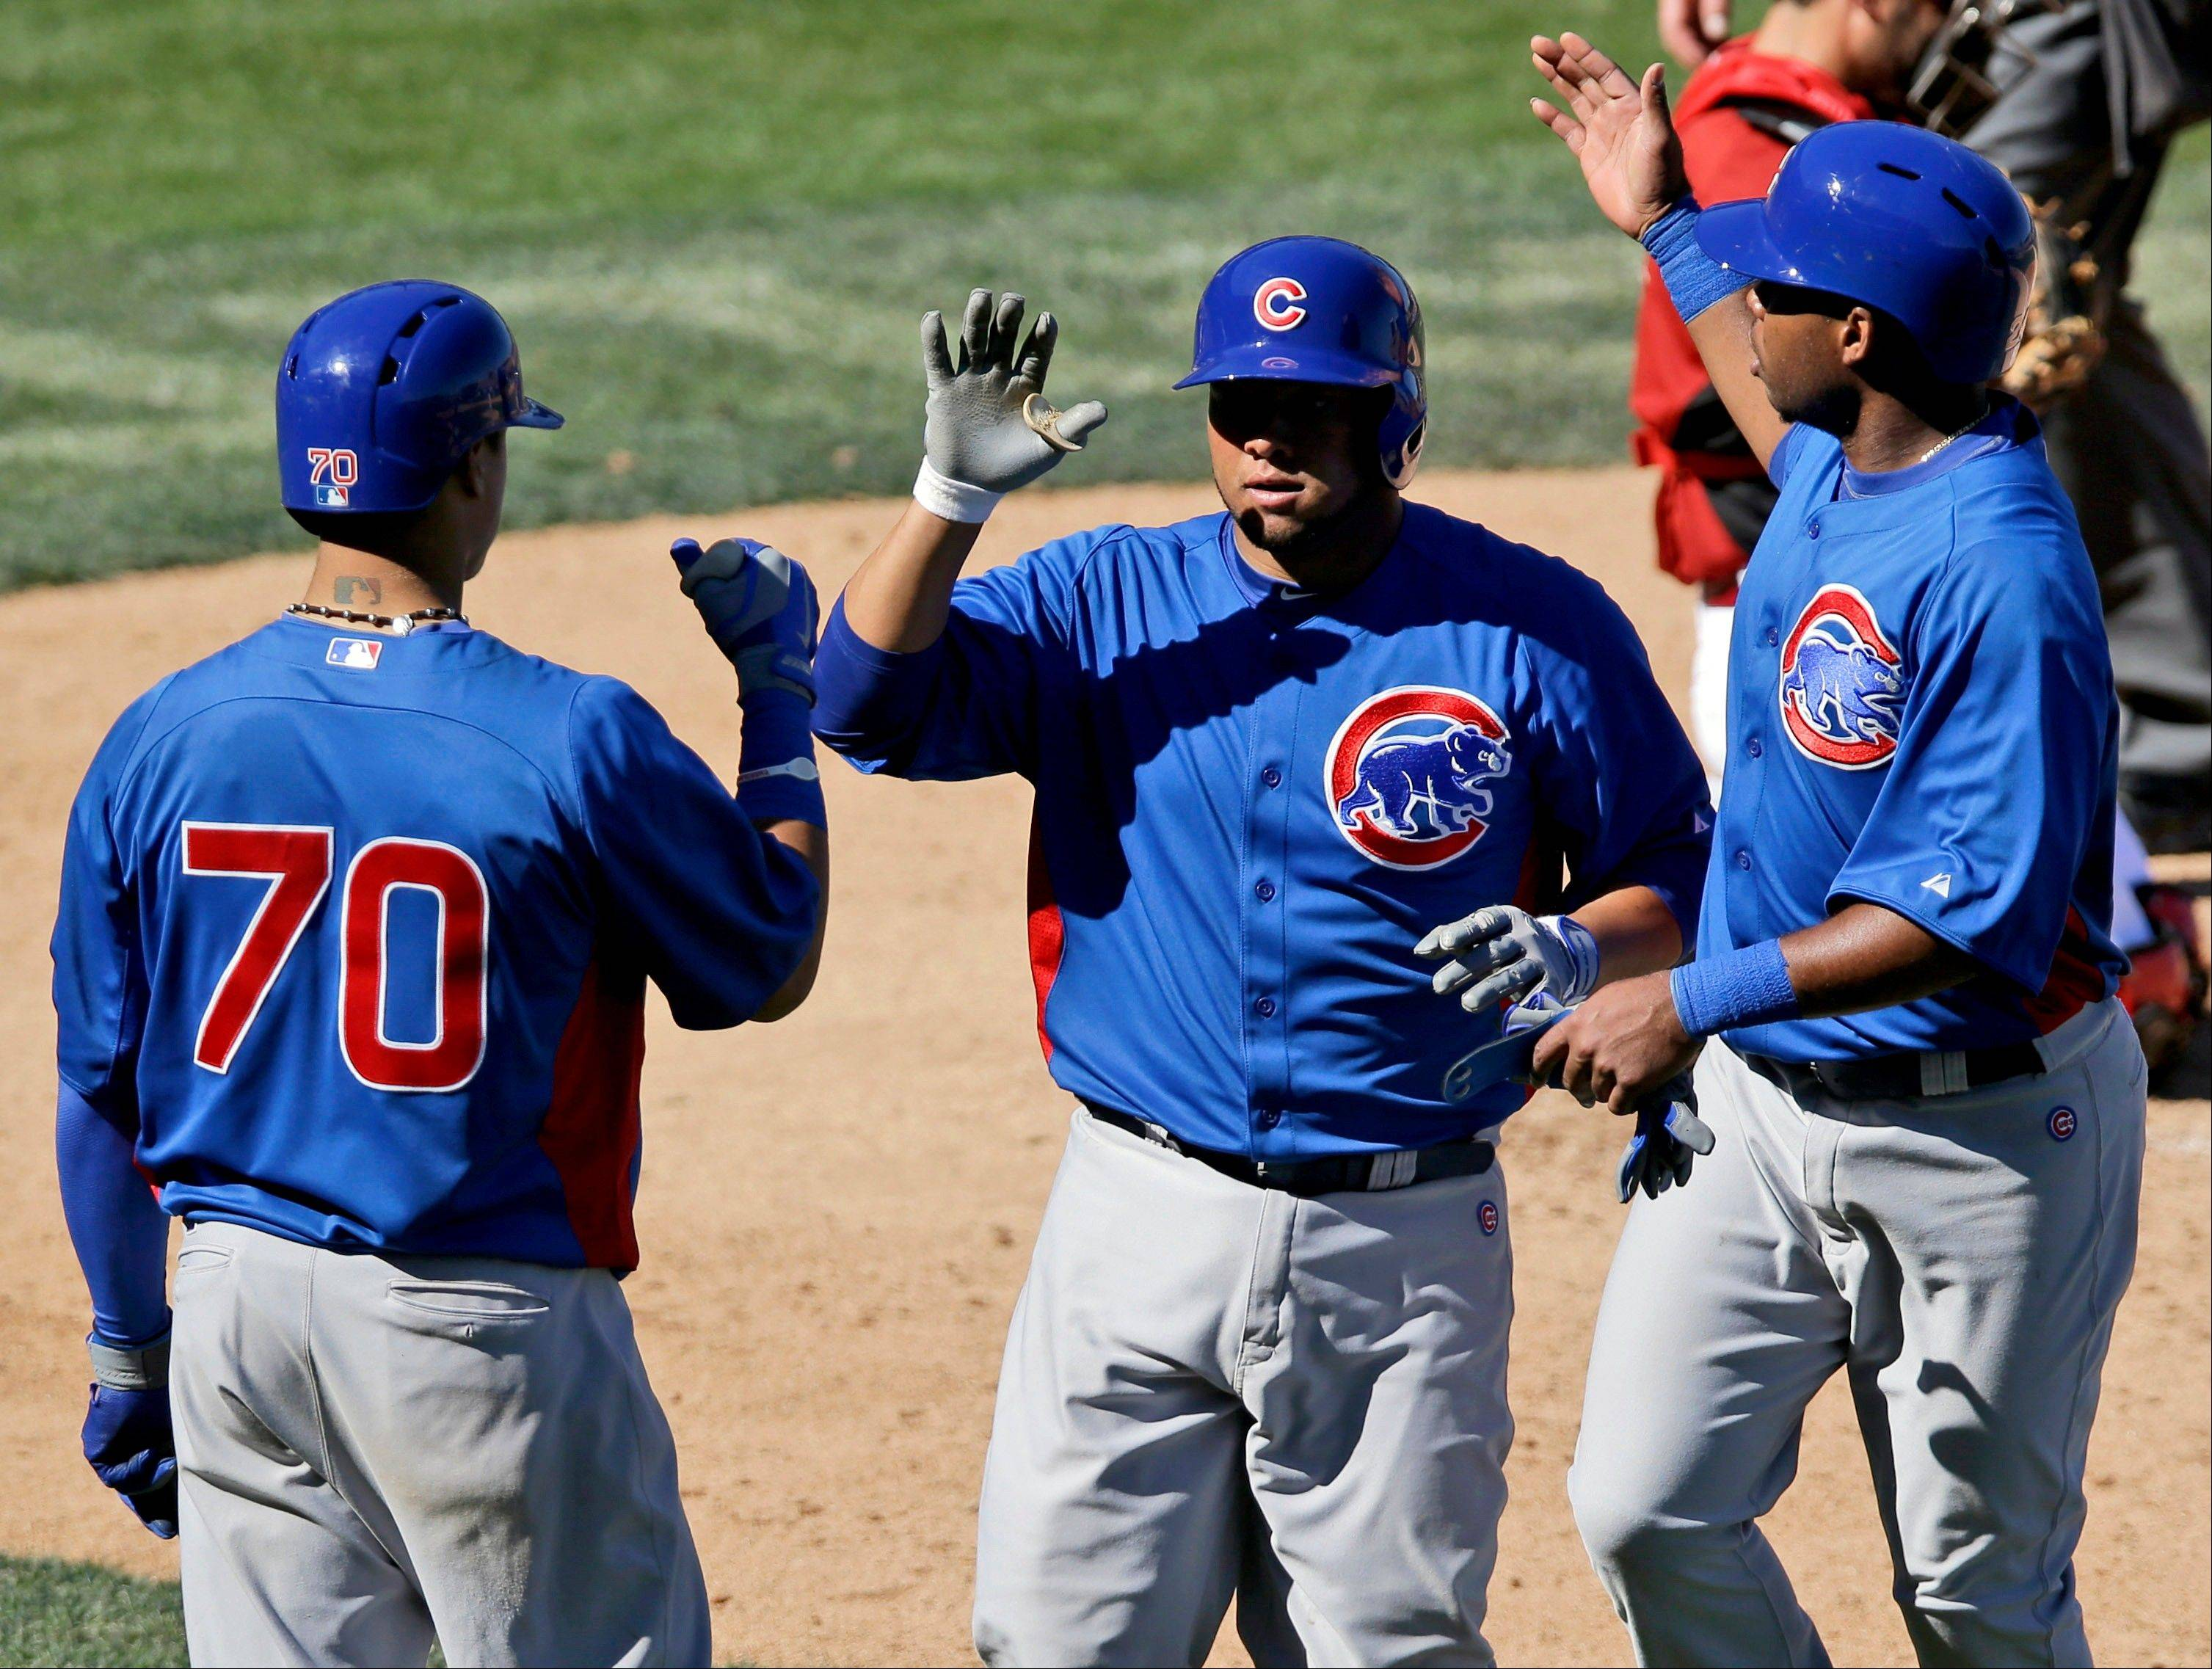 Chicago Cubs' Welington Castillo, center, is greeted at home plate by Javier Baez (70) and Luis Valbuena, right, after his two-run home run against the Arizona Diamondbacks during the sixth inning of an exhibition spring training baseball game, Monday, March 11, 2013, in Scottsdale, Ariz.